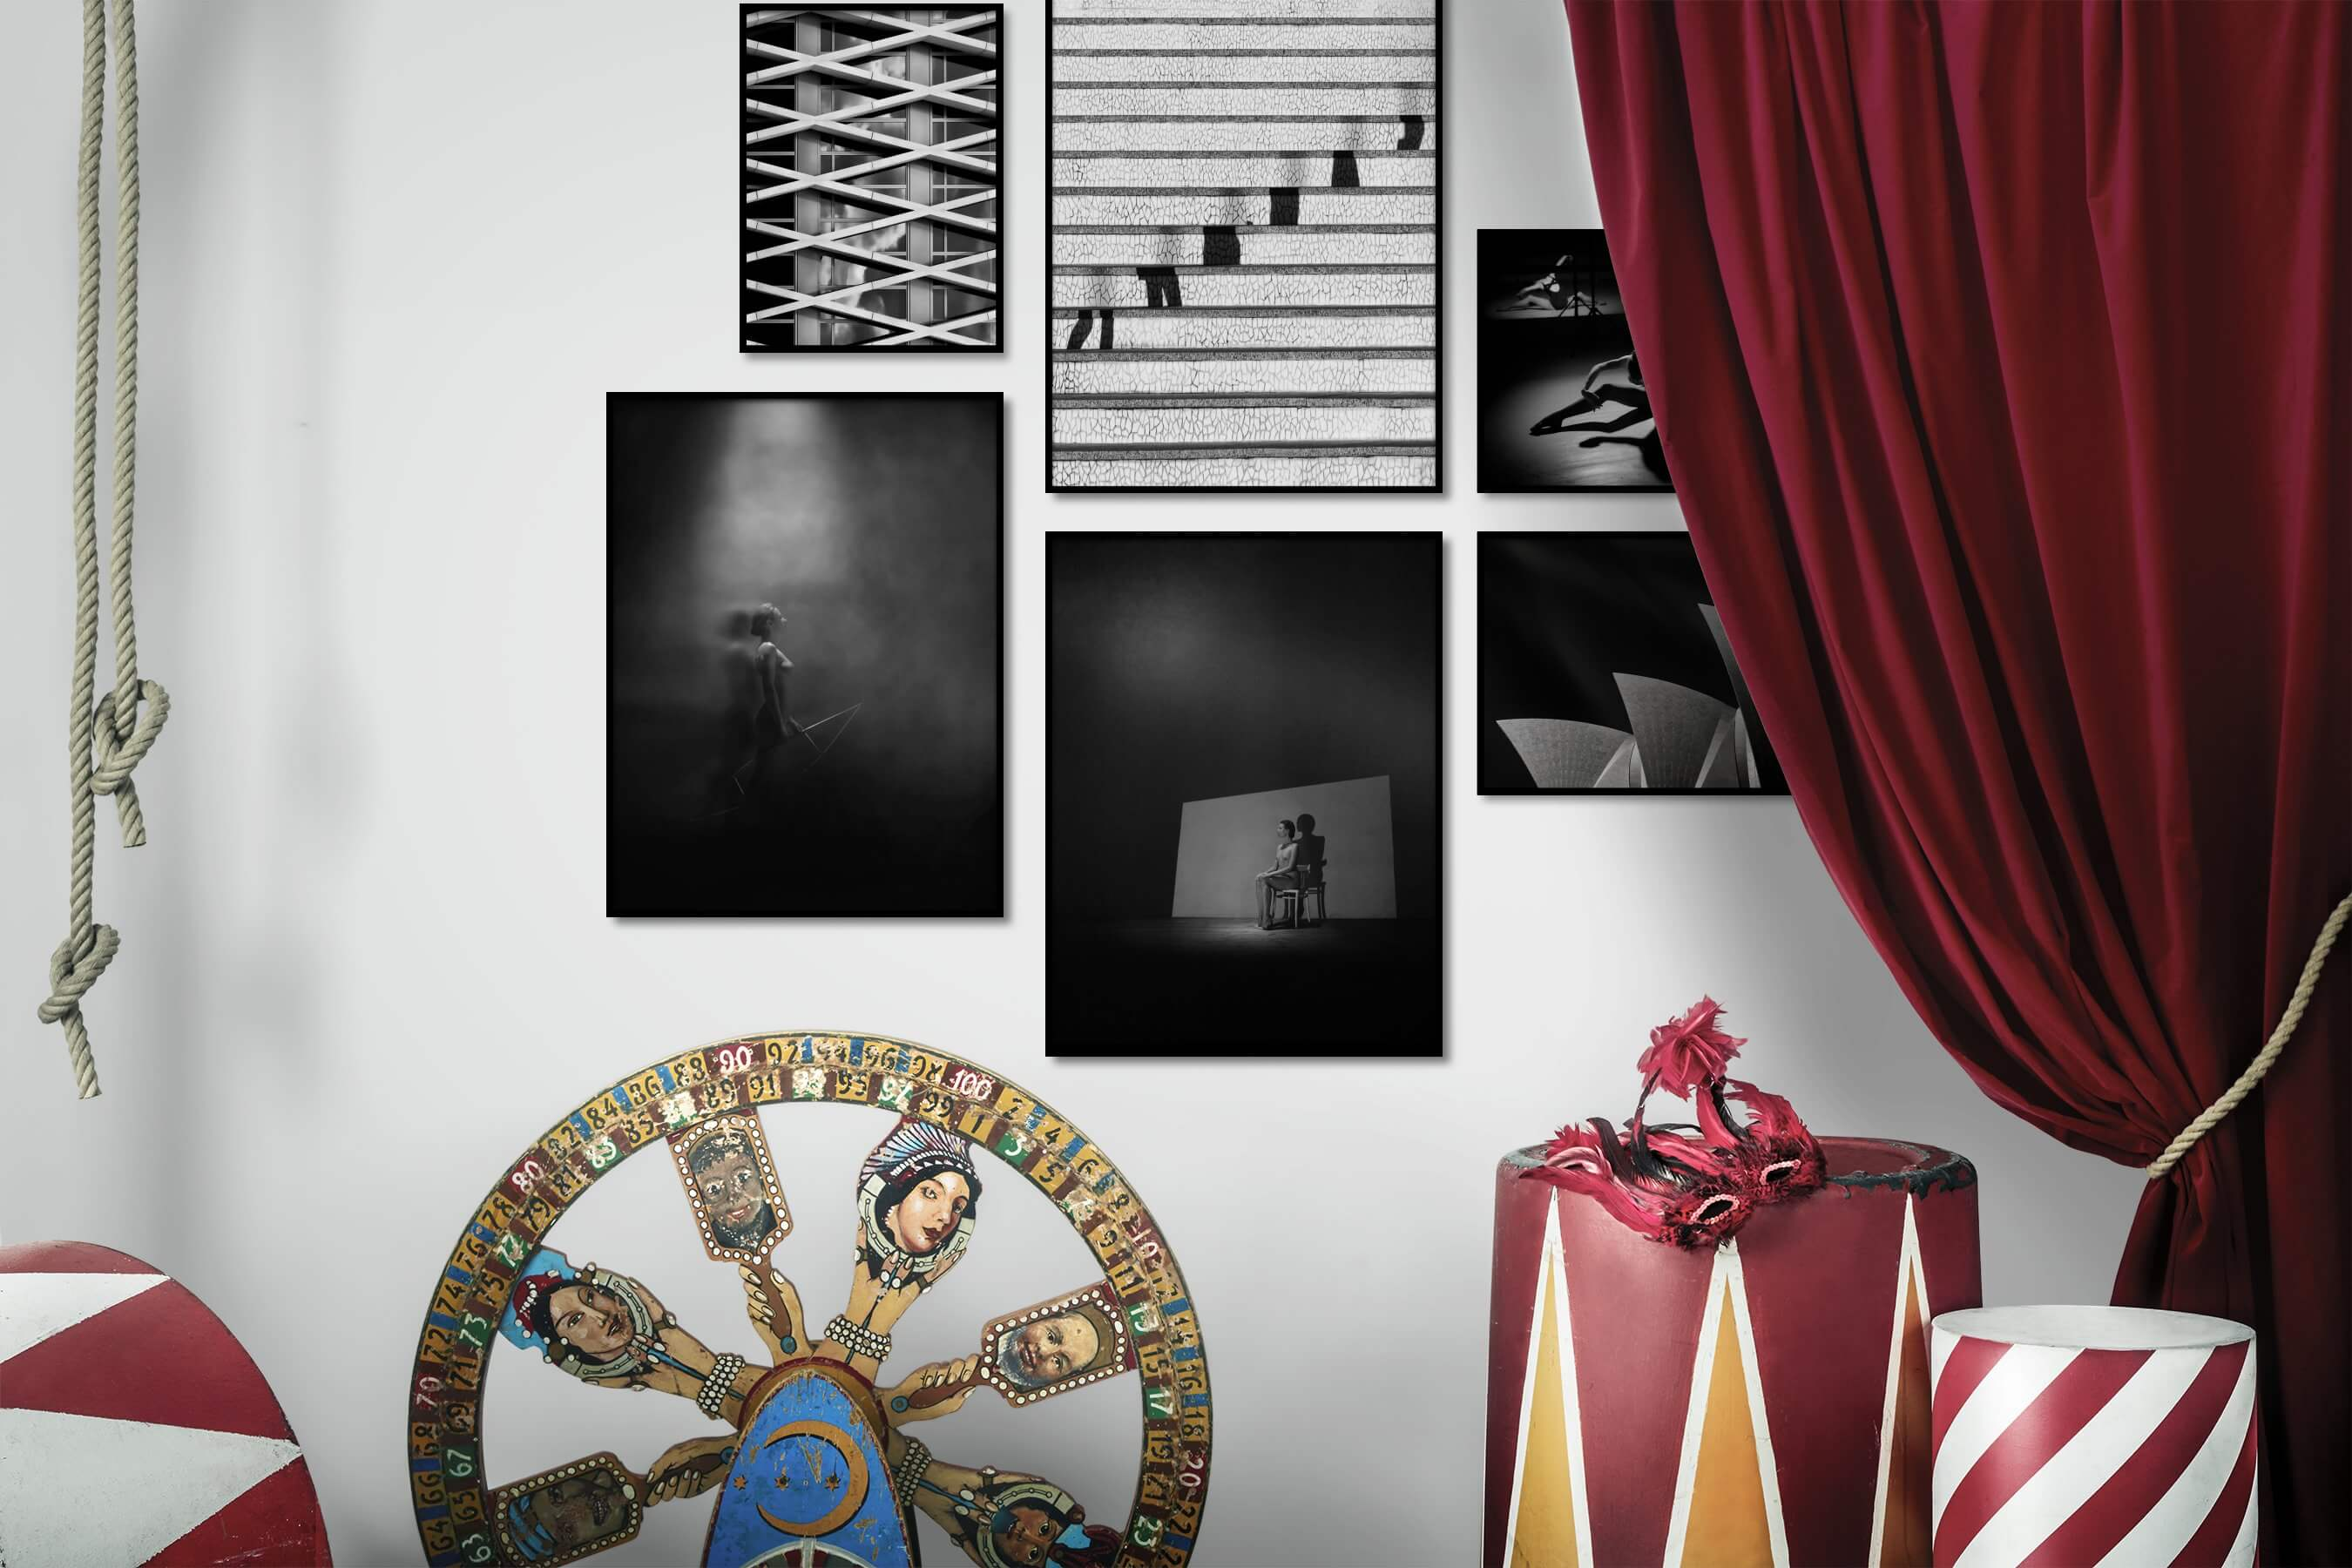 Gallery wall idea with six framed pictures arranged on a wall depicting Black & White, For the Maximalist, For the Moderate, Artsy, Dark Tones, Bold, Fashion & Beauty, For the Minimalist, and City Life